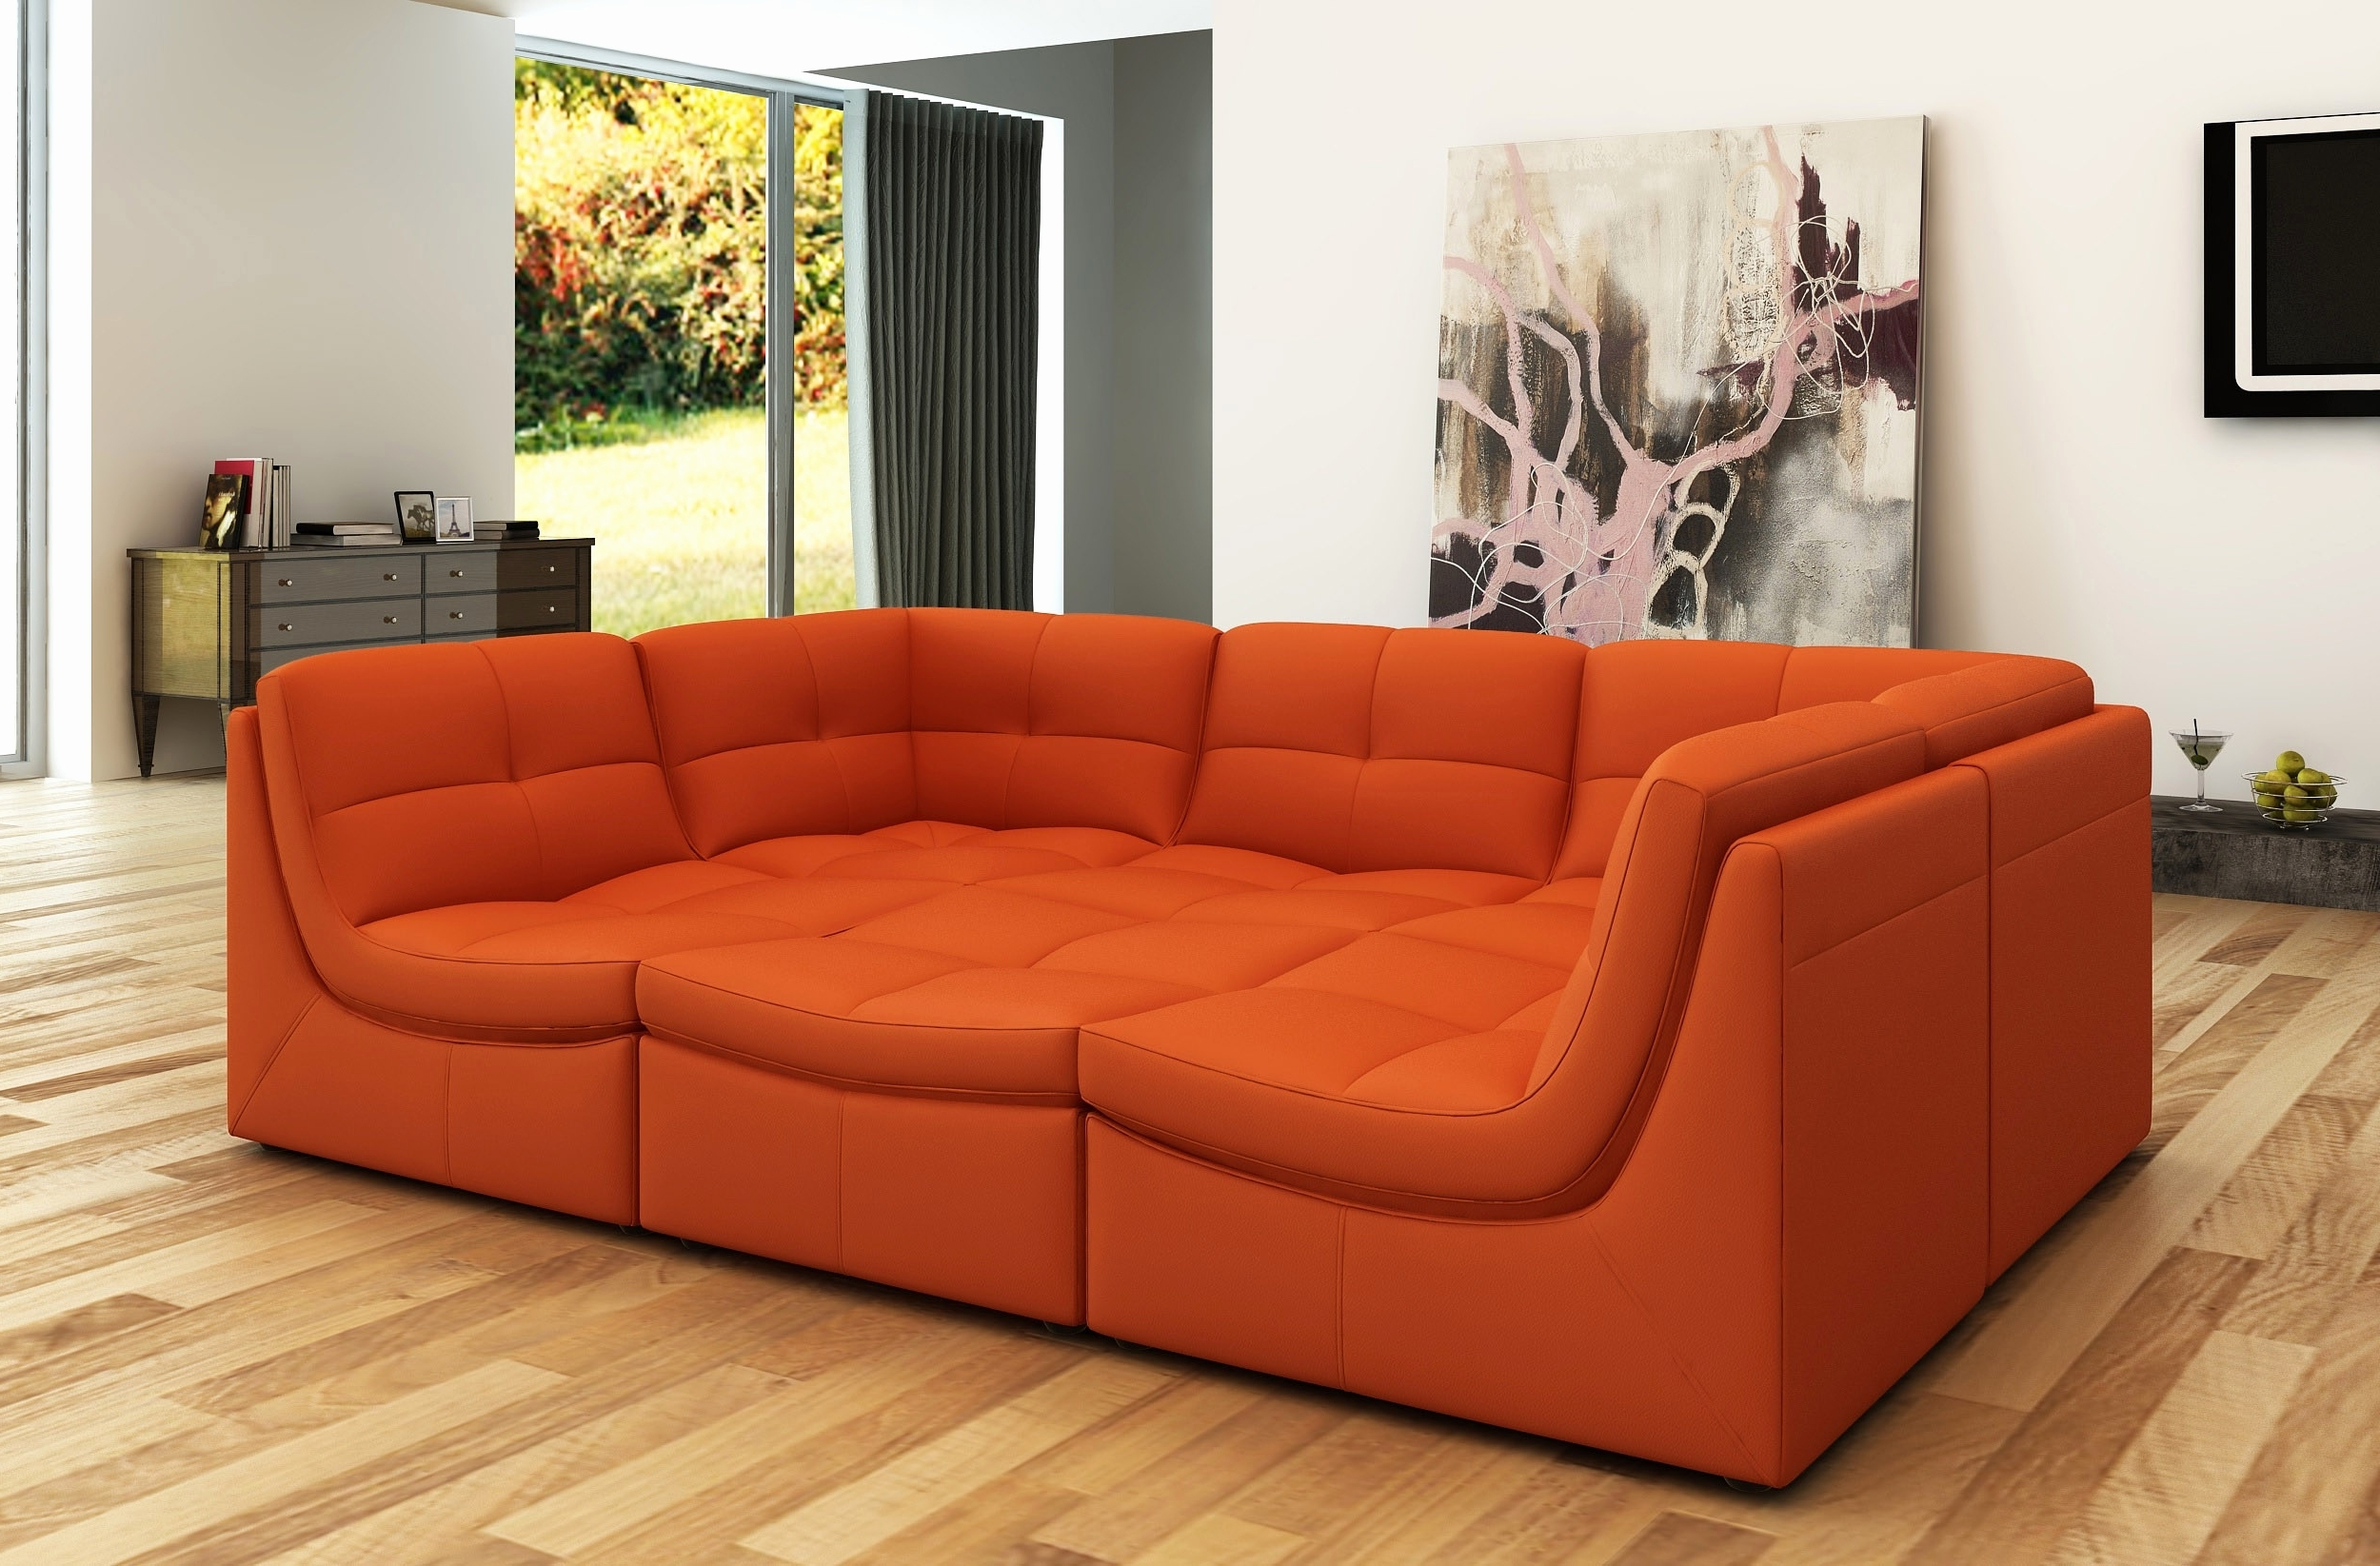 Current Best Leather Modular Couch 2018 – Couches And Sofas Ideas Regarding Des Moines Ia Sectional Sofas (View 4 of 20)